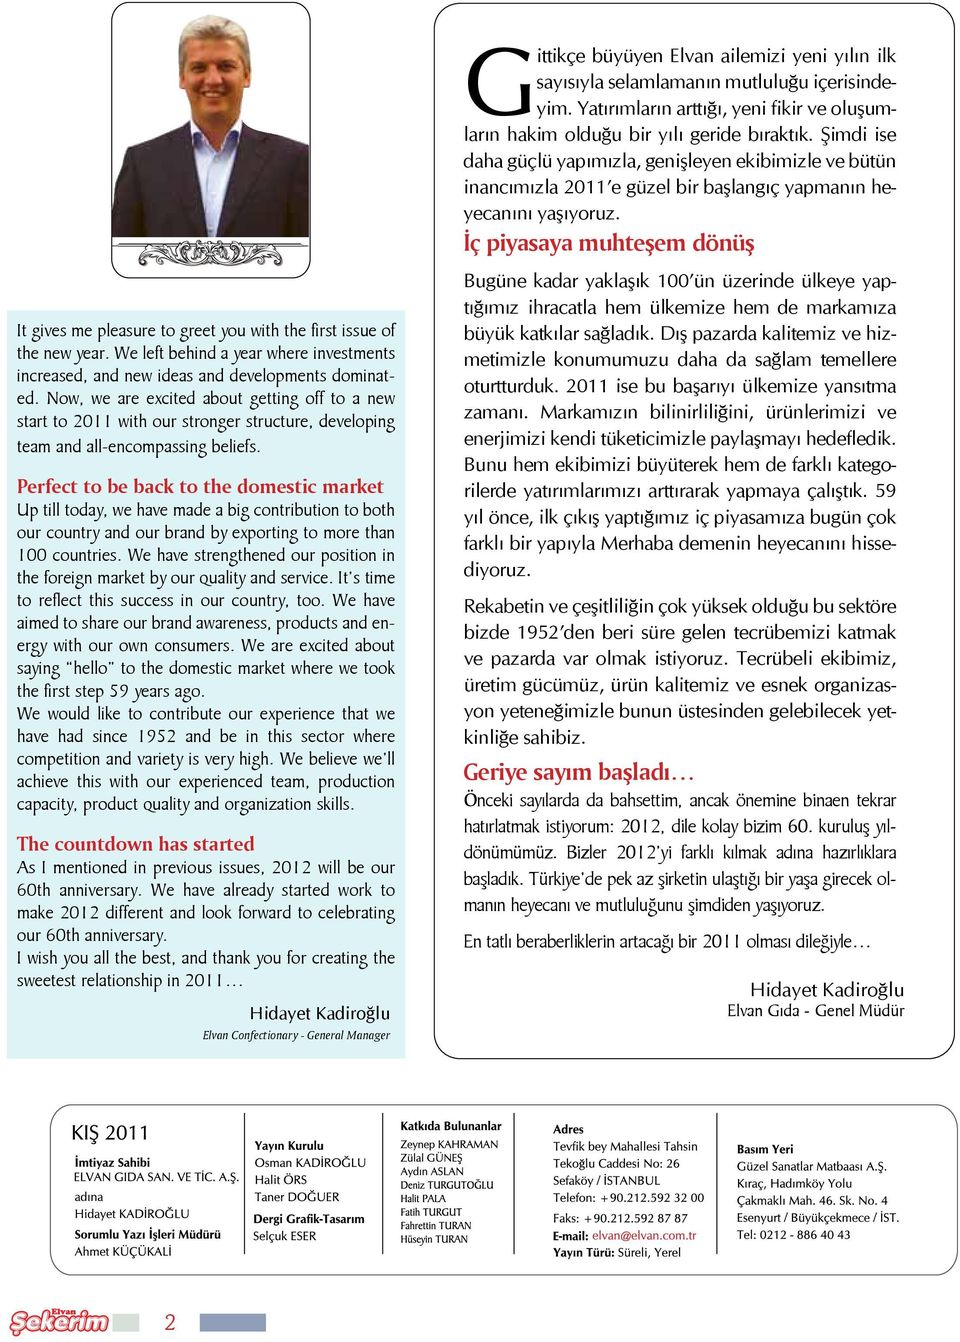 İç piyasaya muhteşem dönüş It gives me pleasure to greet you with the first issue of the new year. We left behind a year where investments increased, and new ideas and developments dominated.